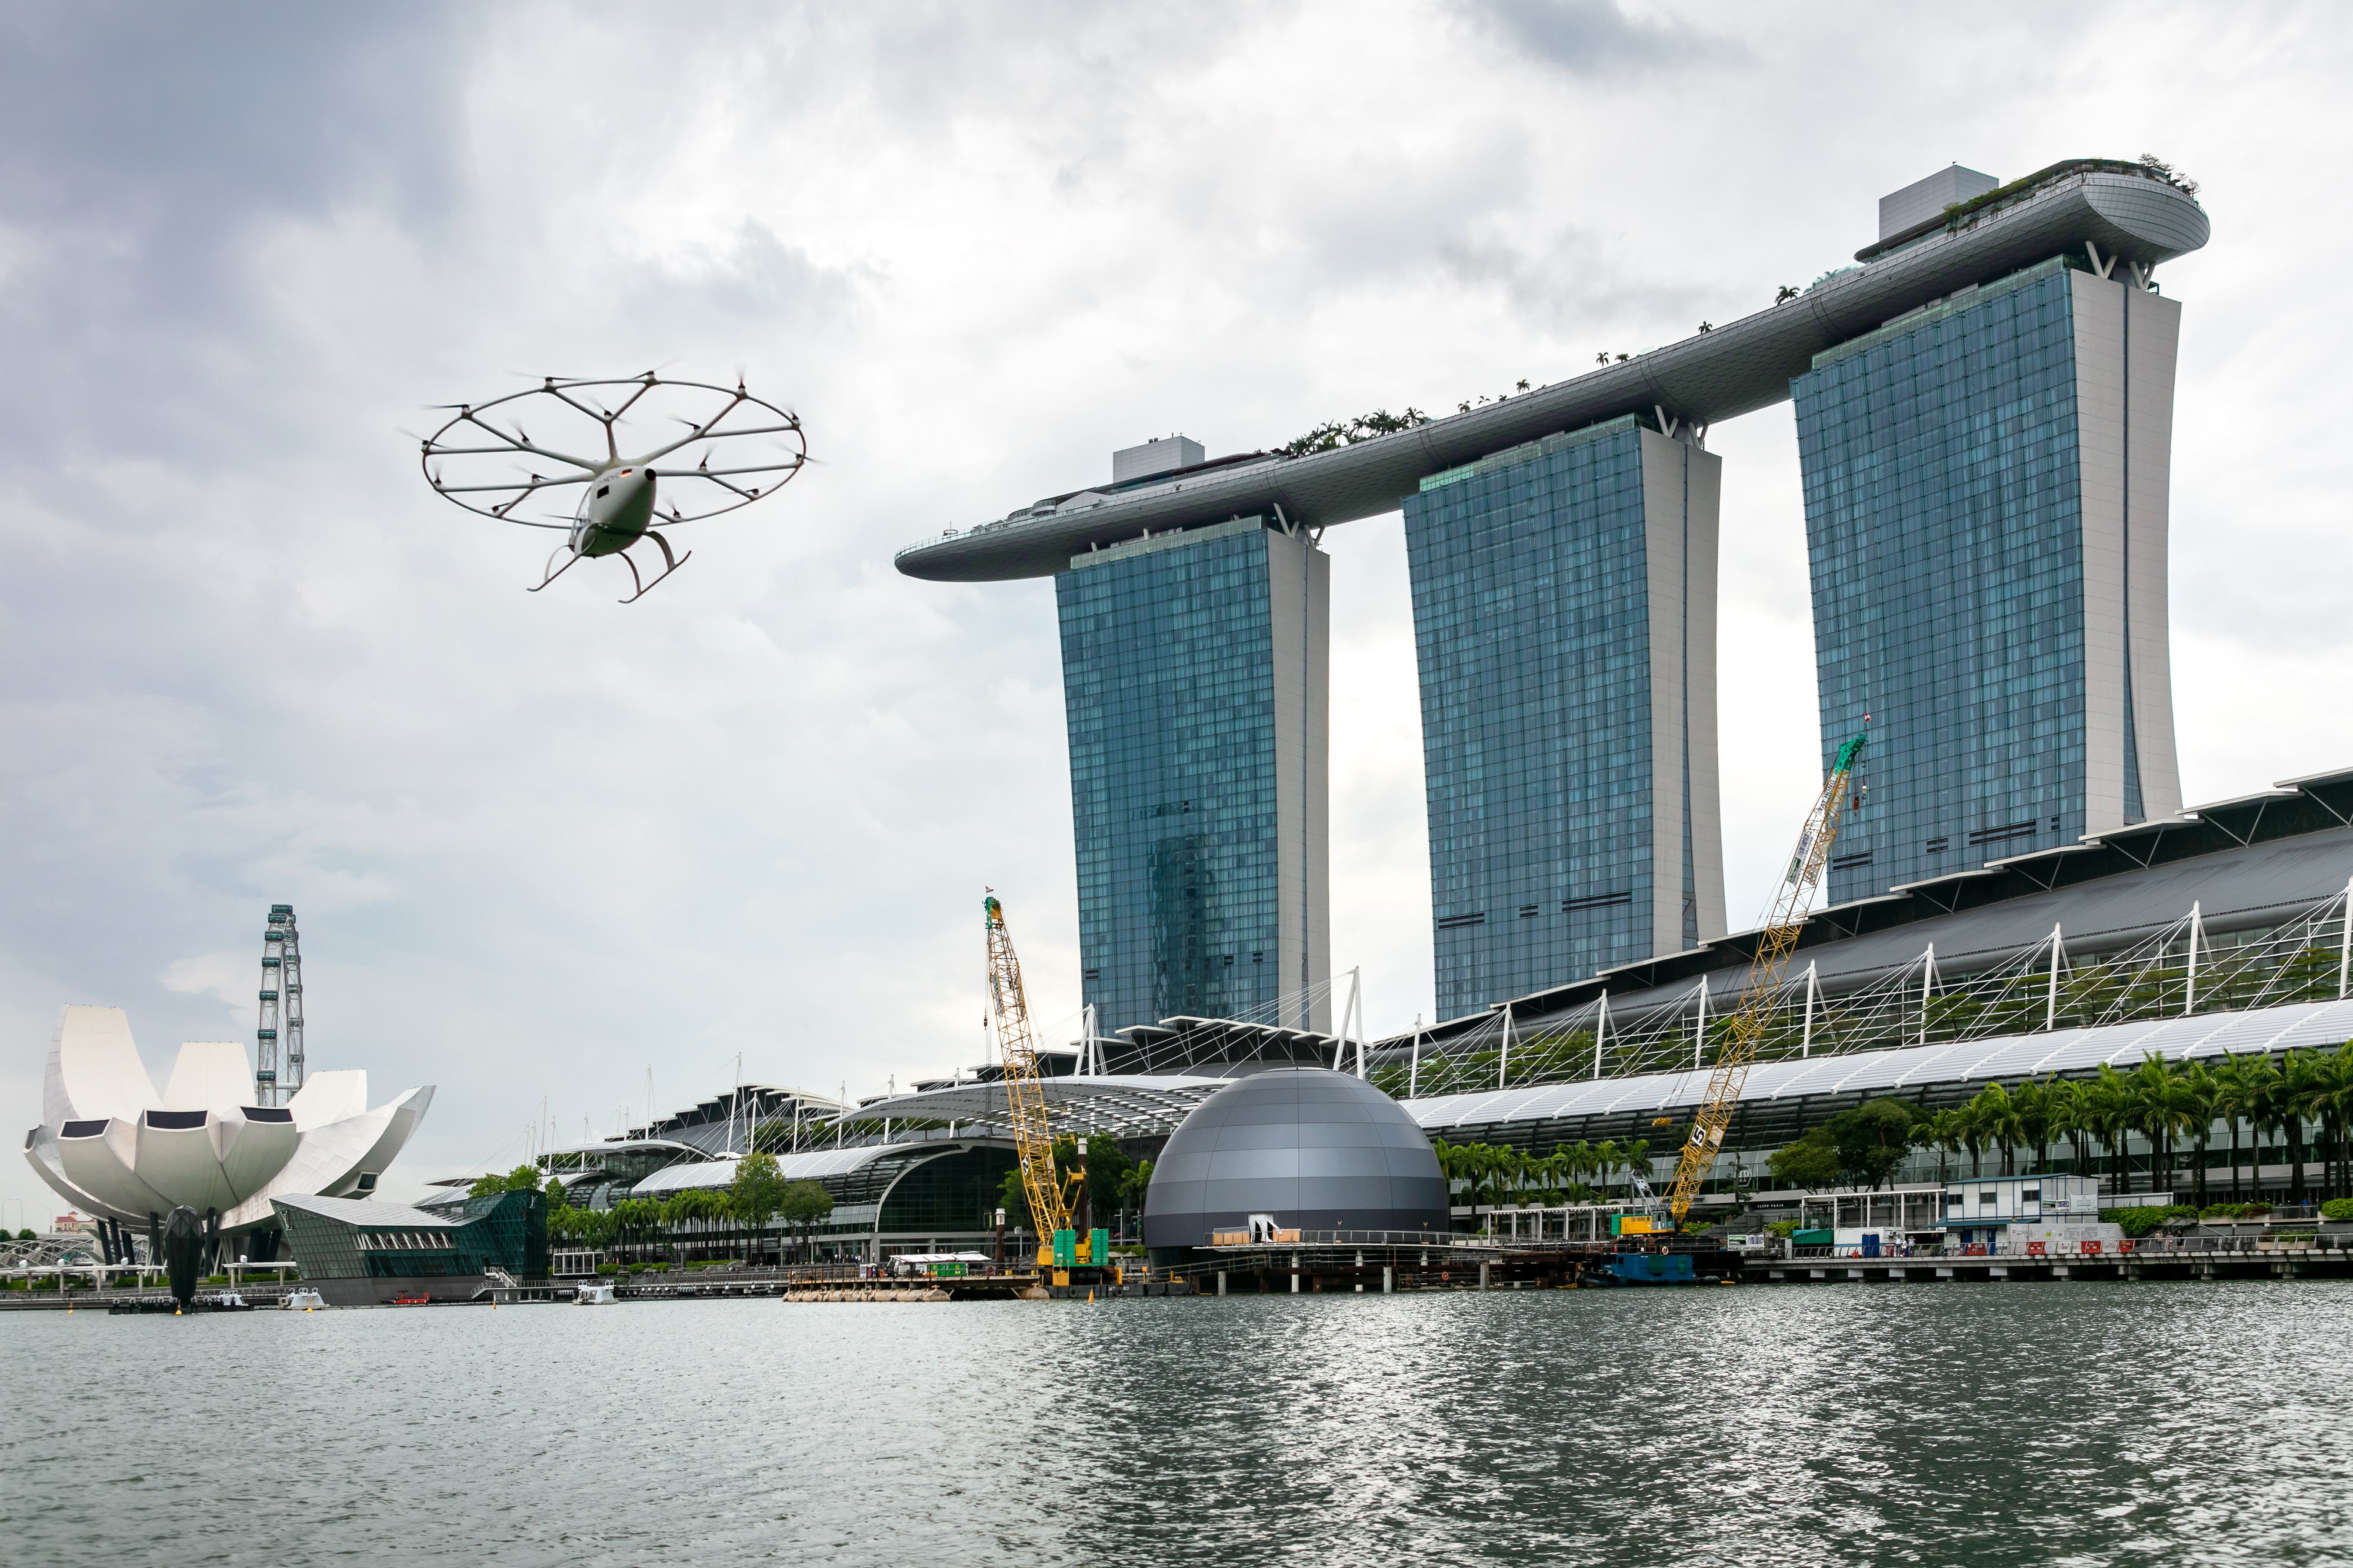 Created by Volocopter, the air taxi flew over Marina Bay on Tuesday. Photo courtesy: Nikolay Kazakov for Volocopter